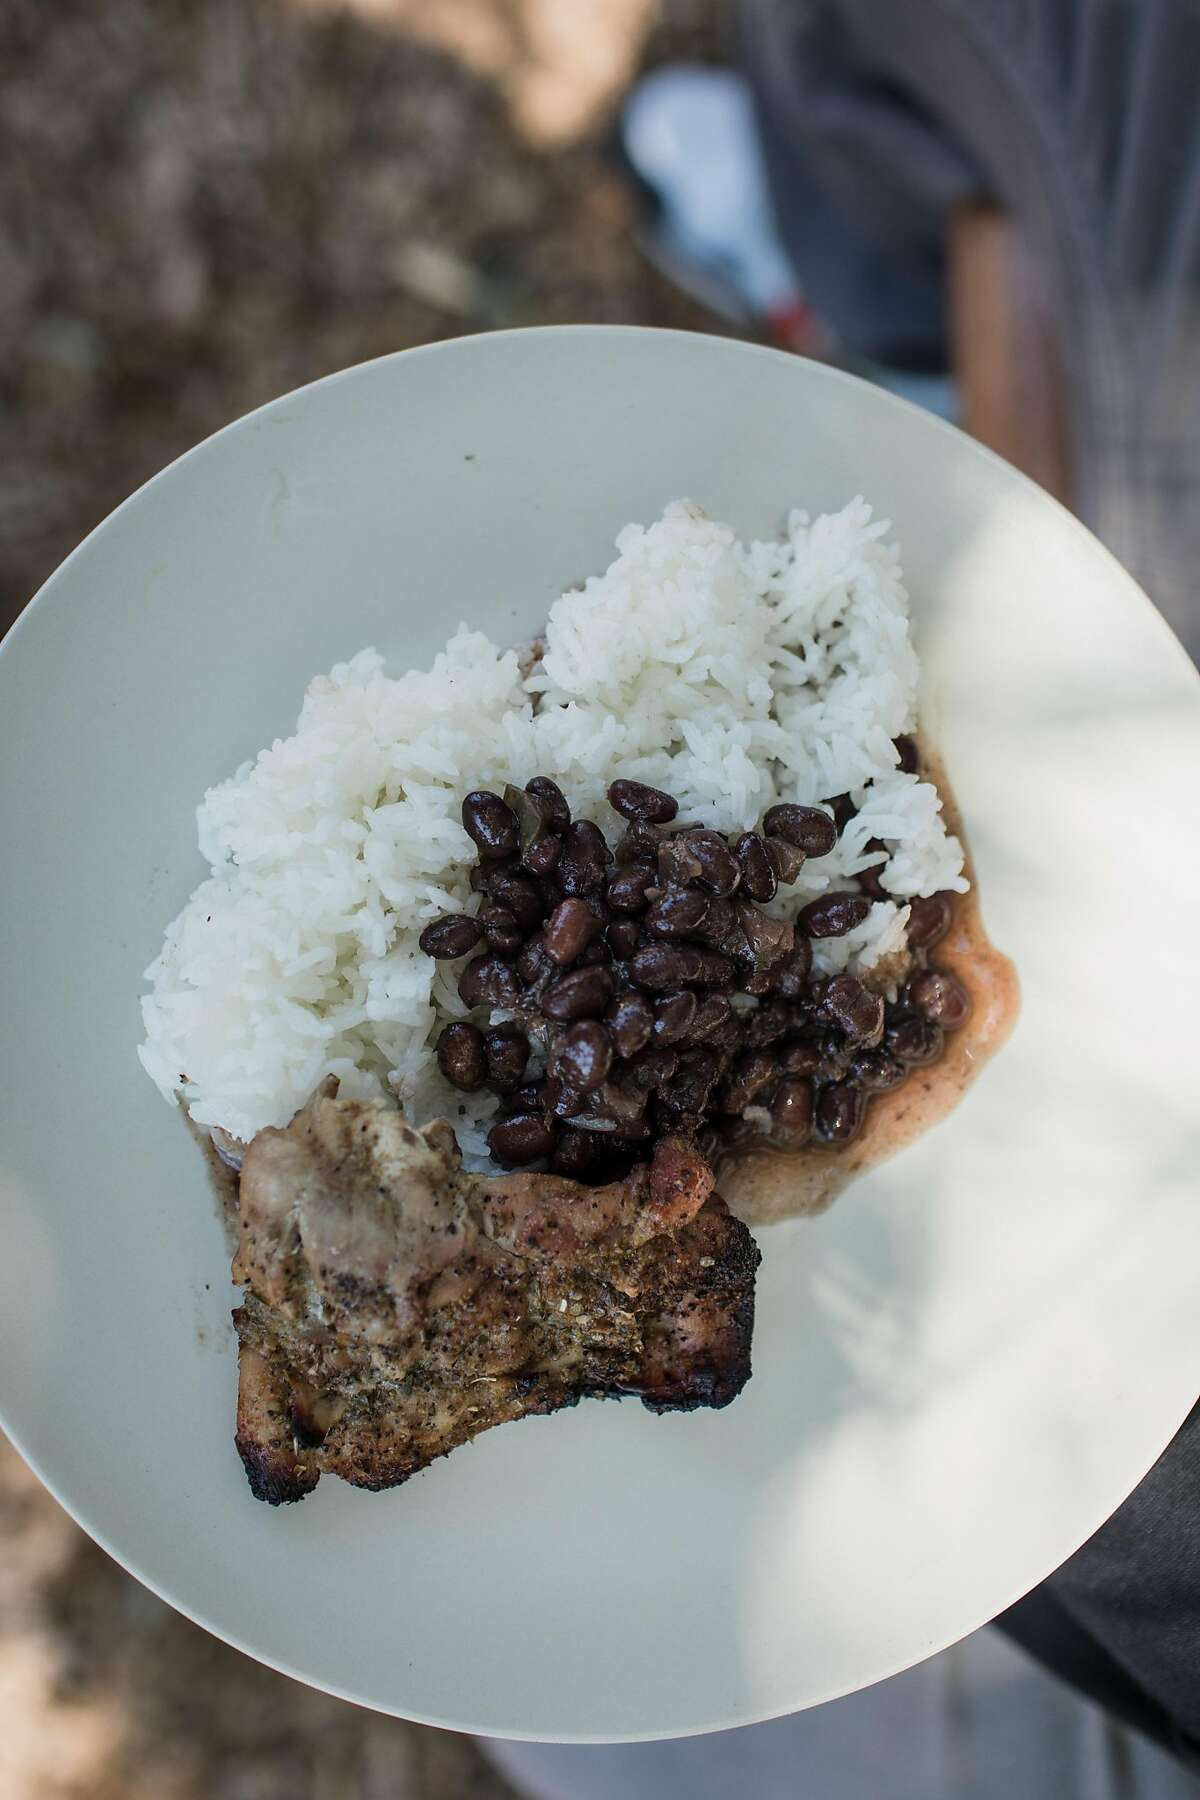 A Dozen Cousins' Cuban black beans served with pollo asado and white rice on June 17, 2019 in Berkeley, California. Cuban black beans are typically made with white sugar and white vinegar, but Dozen Cousins uses apple cider vinegar and tomato paste for the same flavor without added sugar.